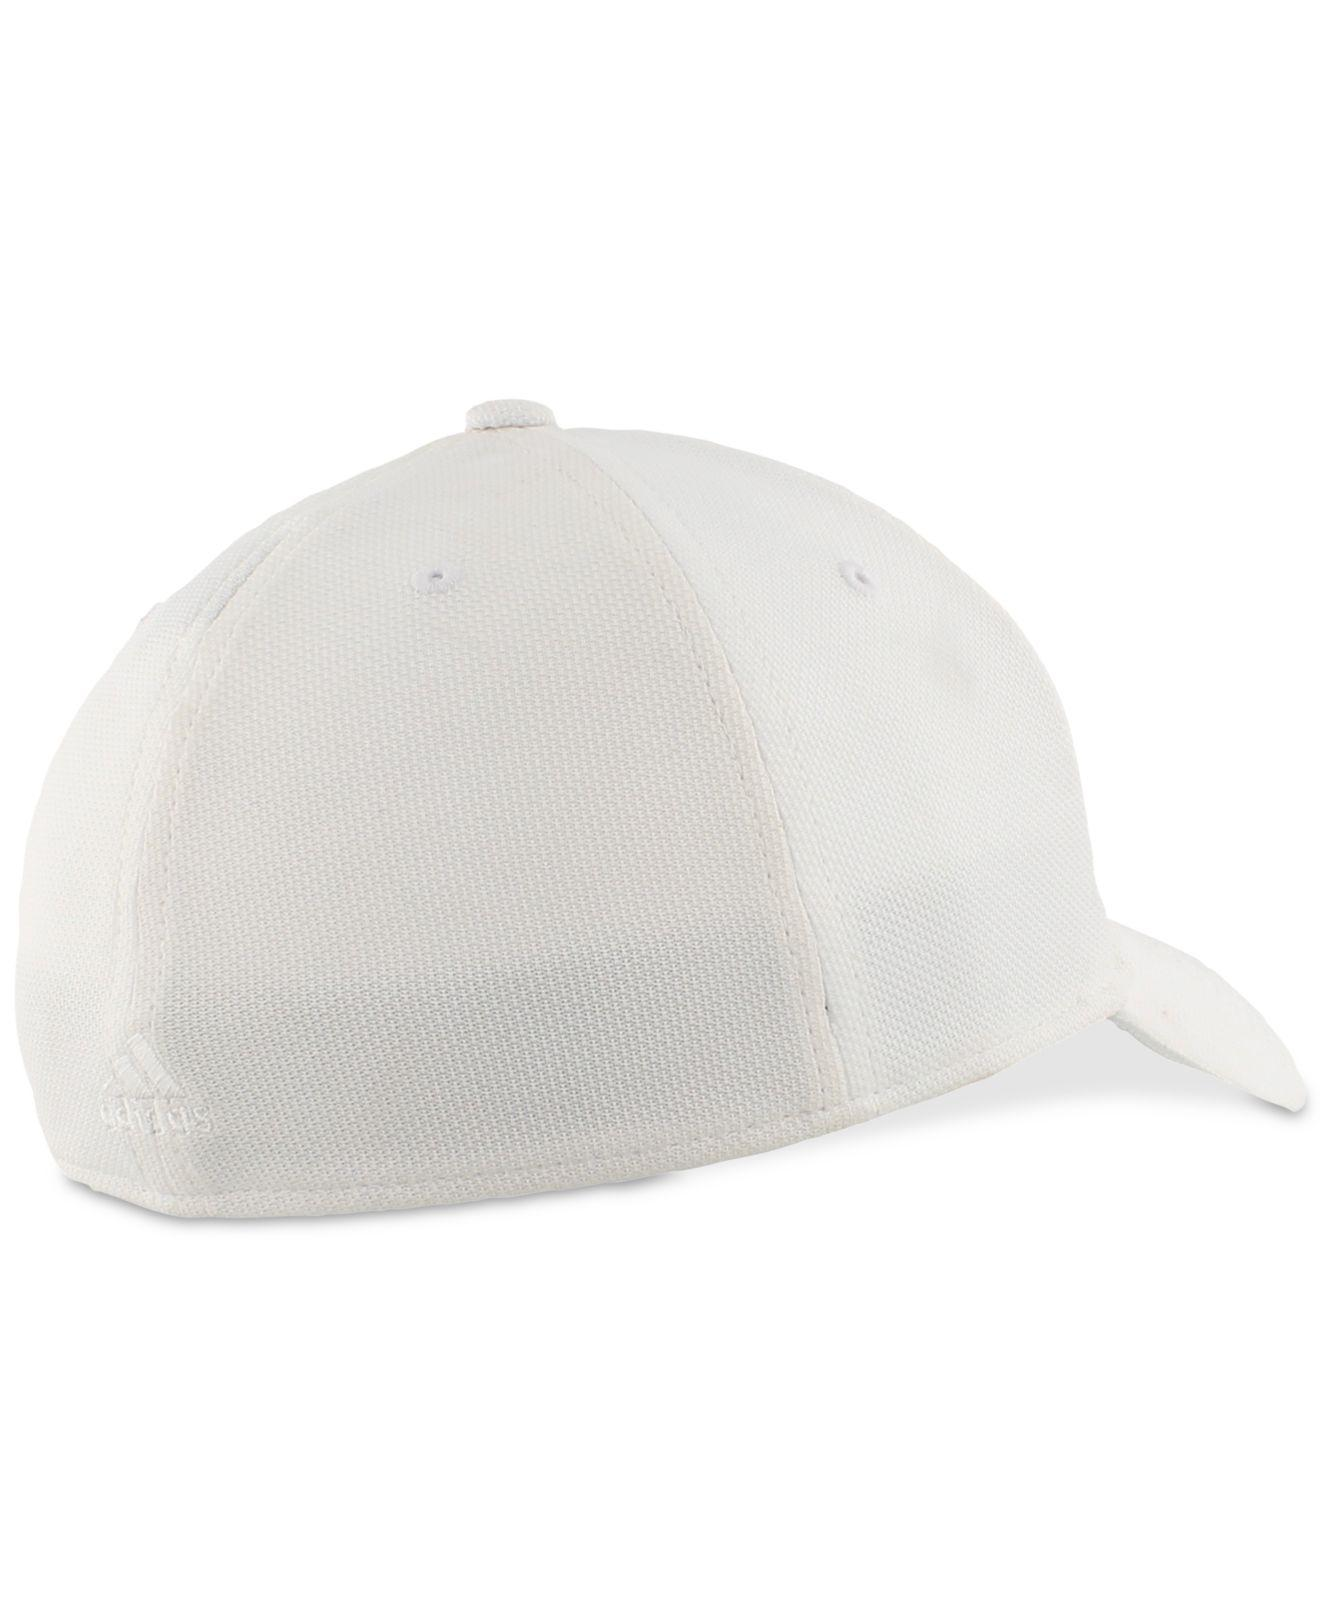 Lyst - adidas Climalite® Stretch Rucker Hat in White for Men b41fb98c4d6b